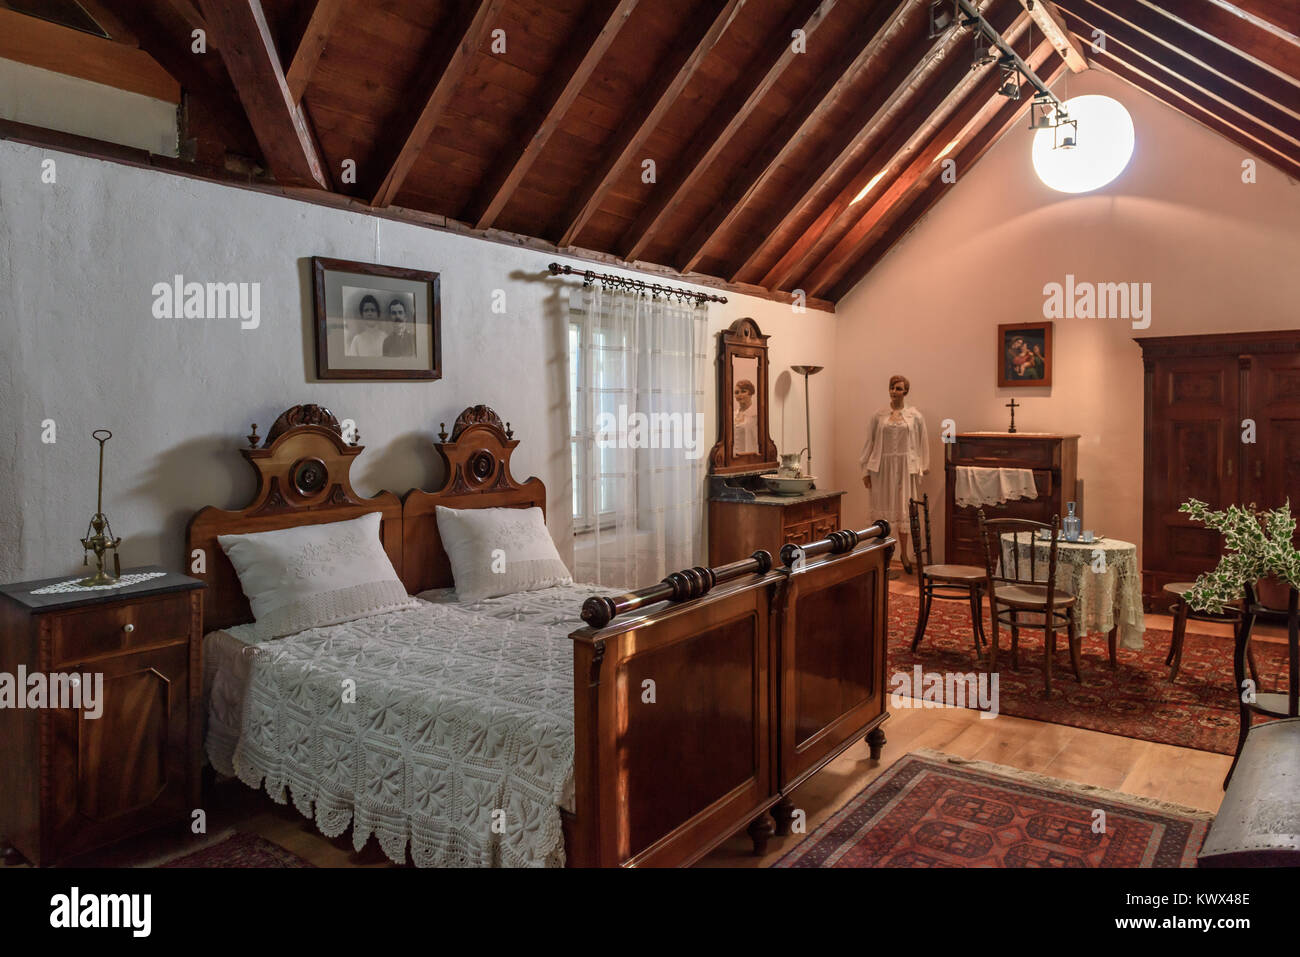 19th Cent. Middle Class bedroom display, Ethnographic Museum, Split, Croatia - Stock Image